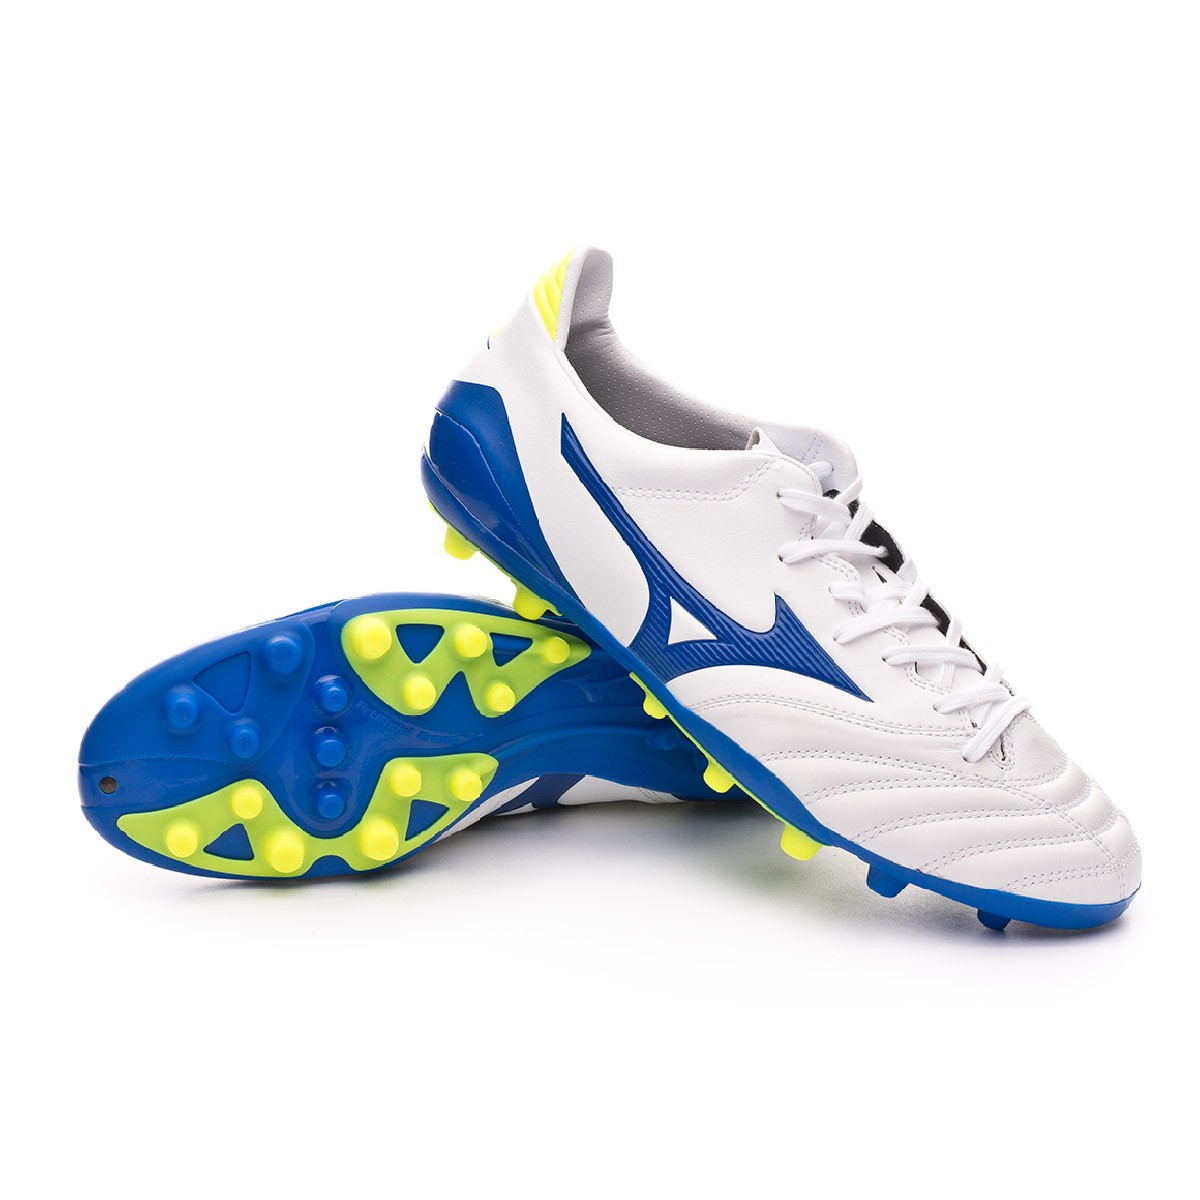 separation shoes c08bb 1a526 Bota Morelia Neo KL II AG White-Wave cup blue-Safety yellow